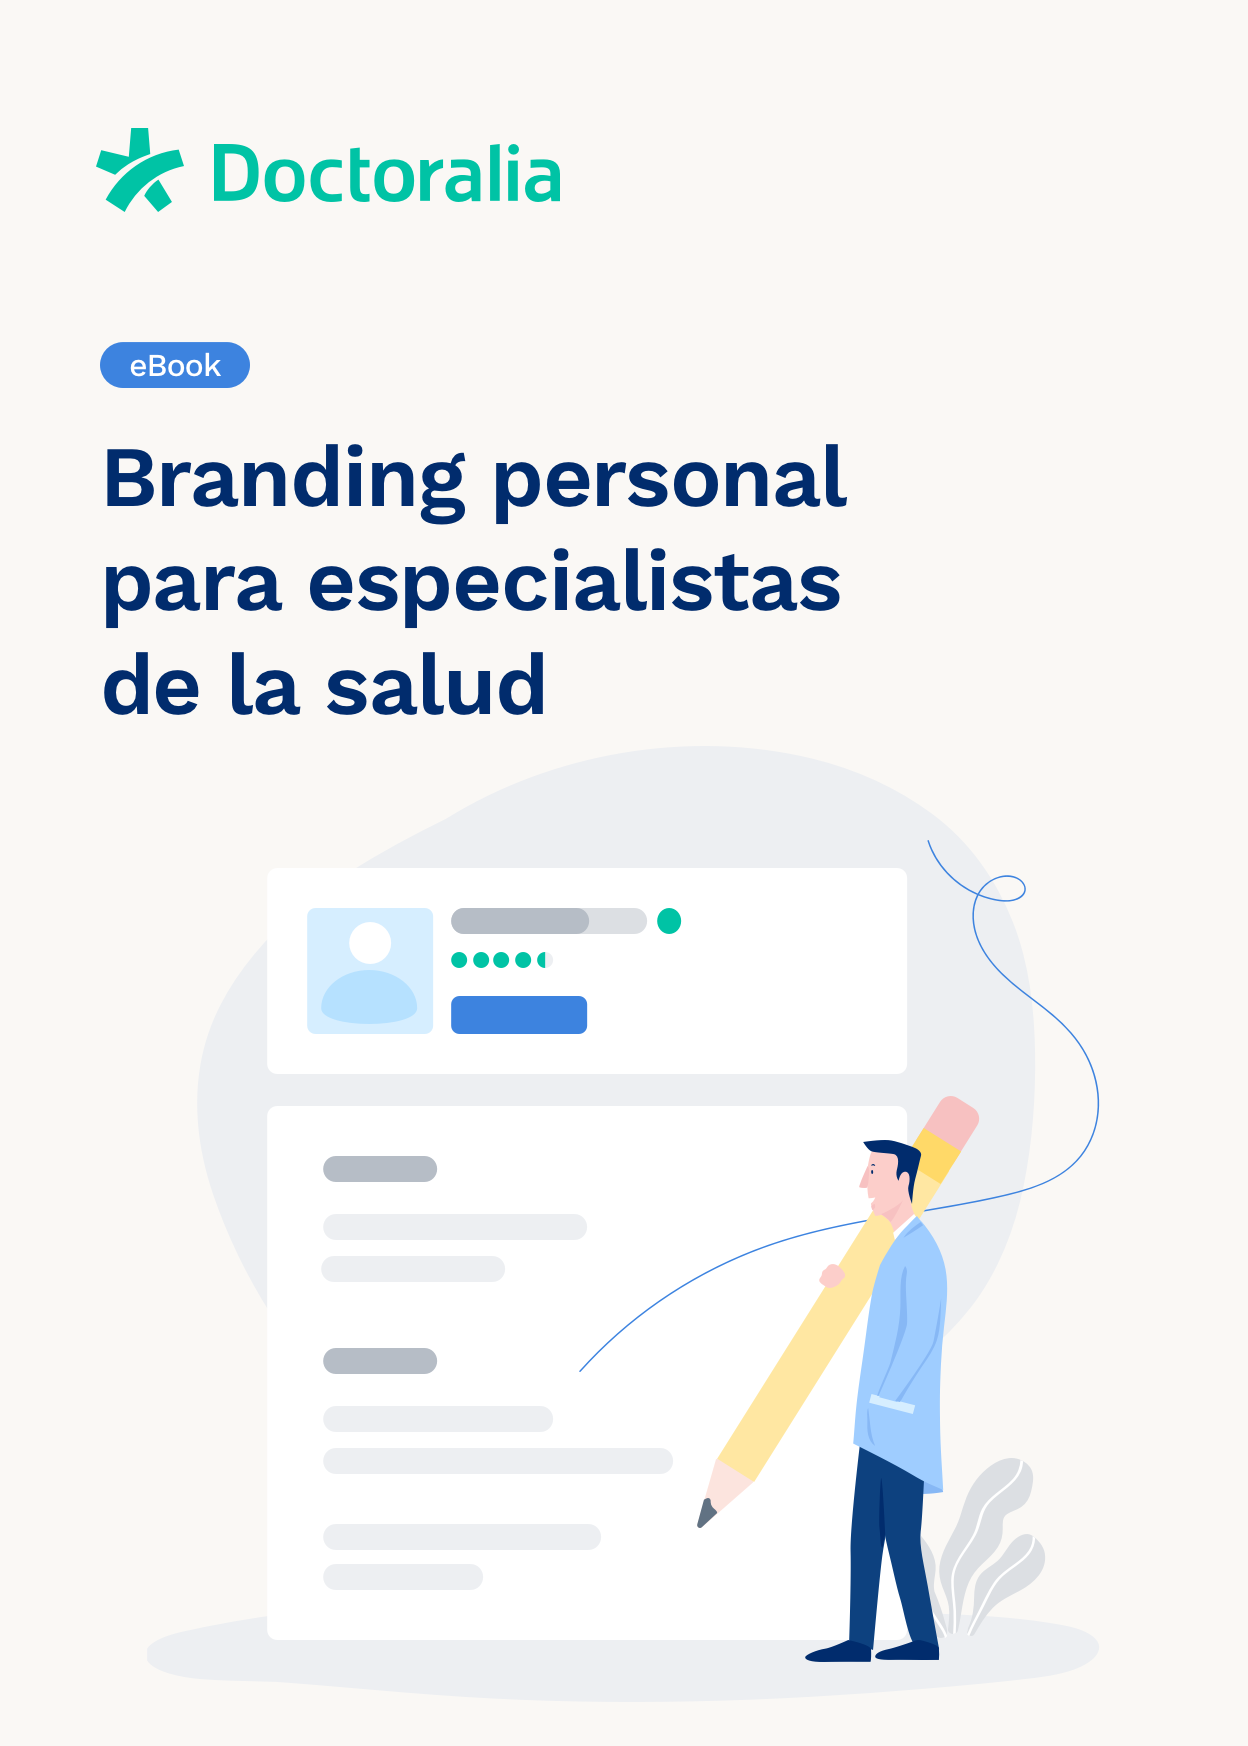 shareable-mx-ebook-branding-personal-especialistas-salud-cover